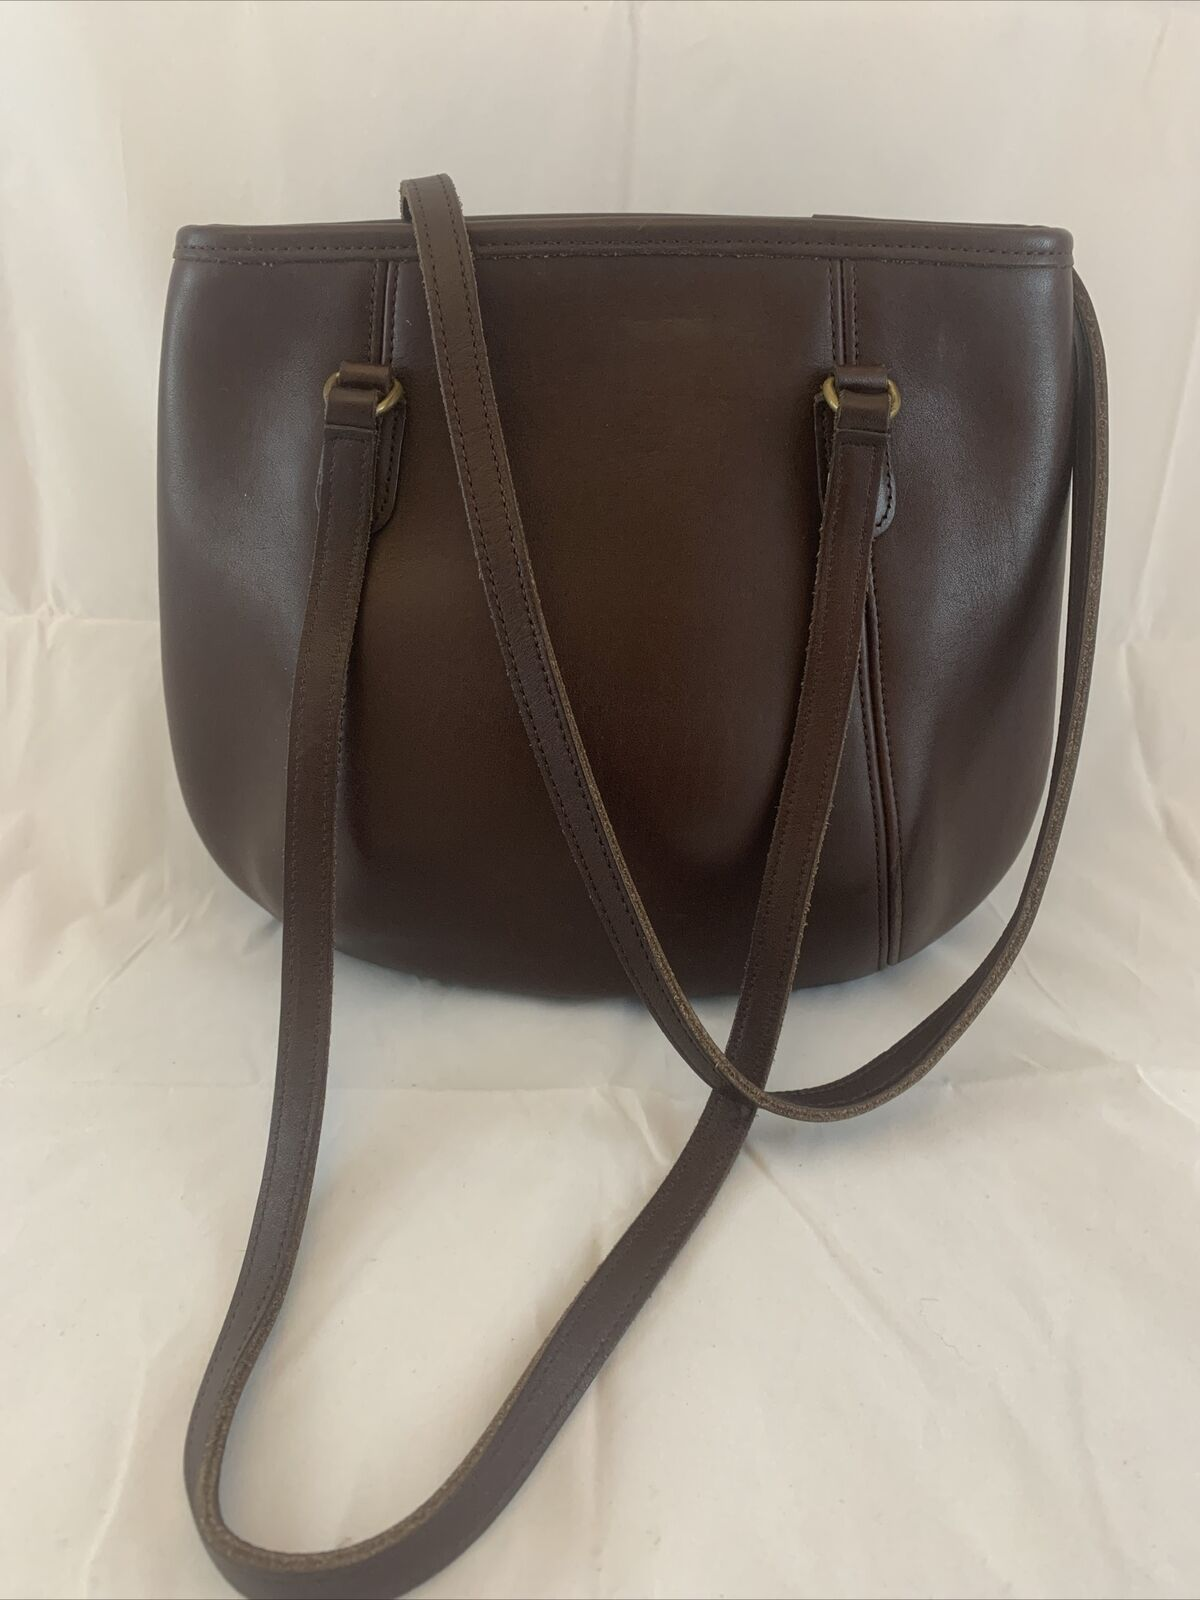 Vintage 90s Coach Framed Pouch Brown Leather Purs… - image 1